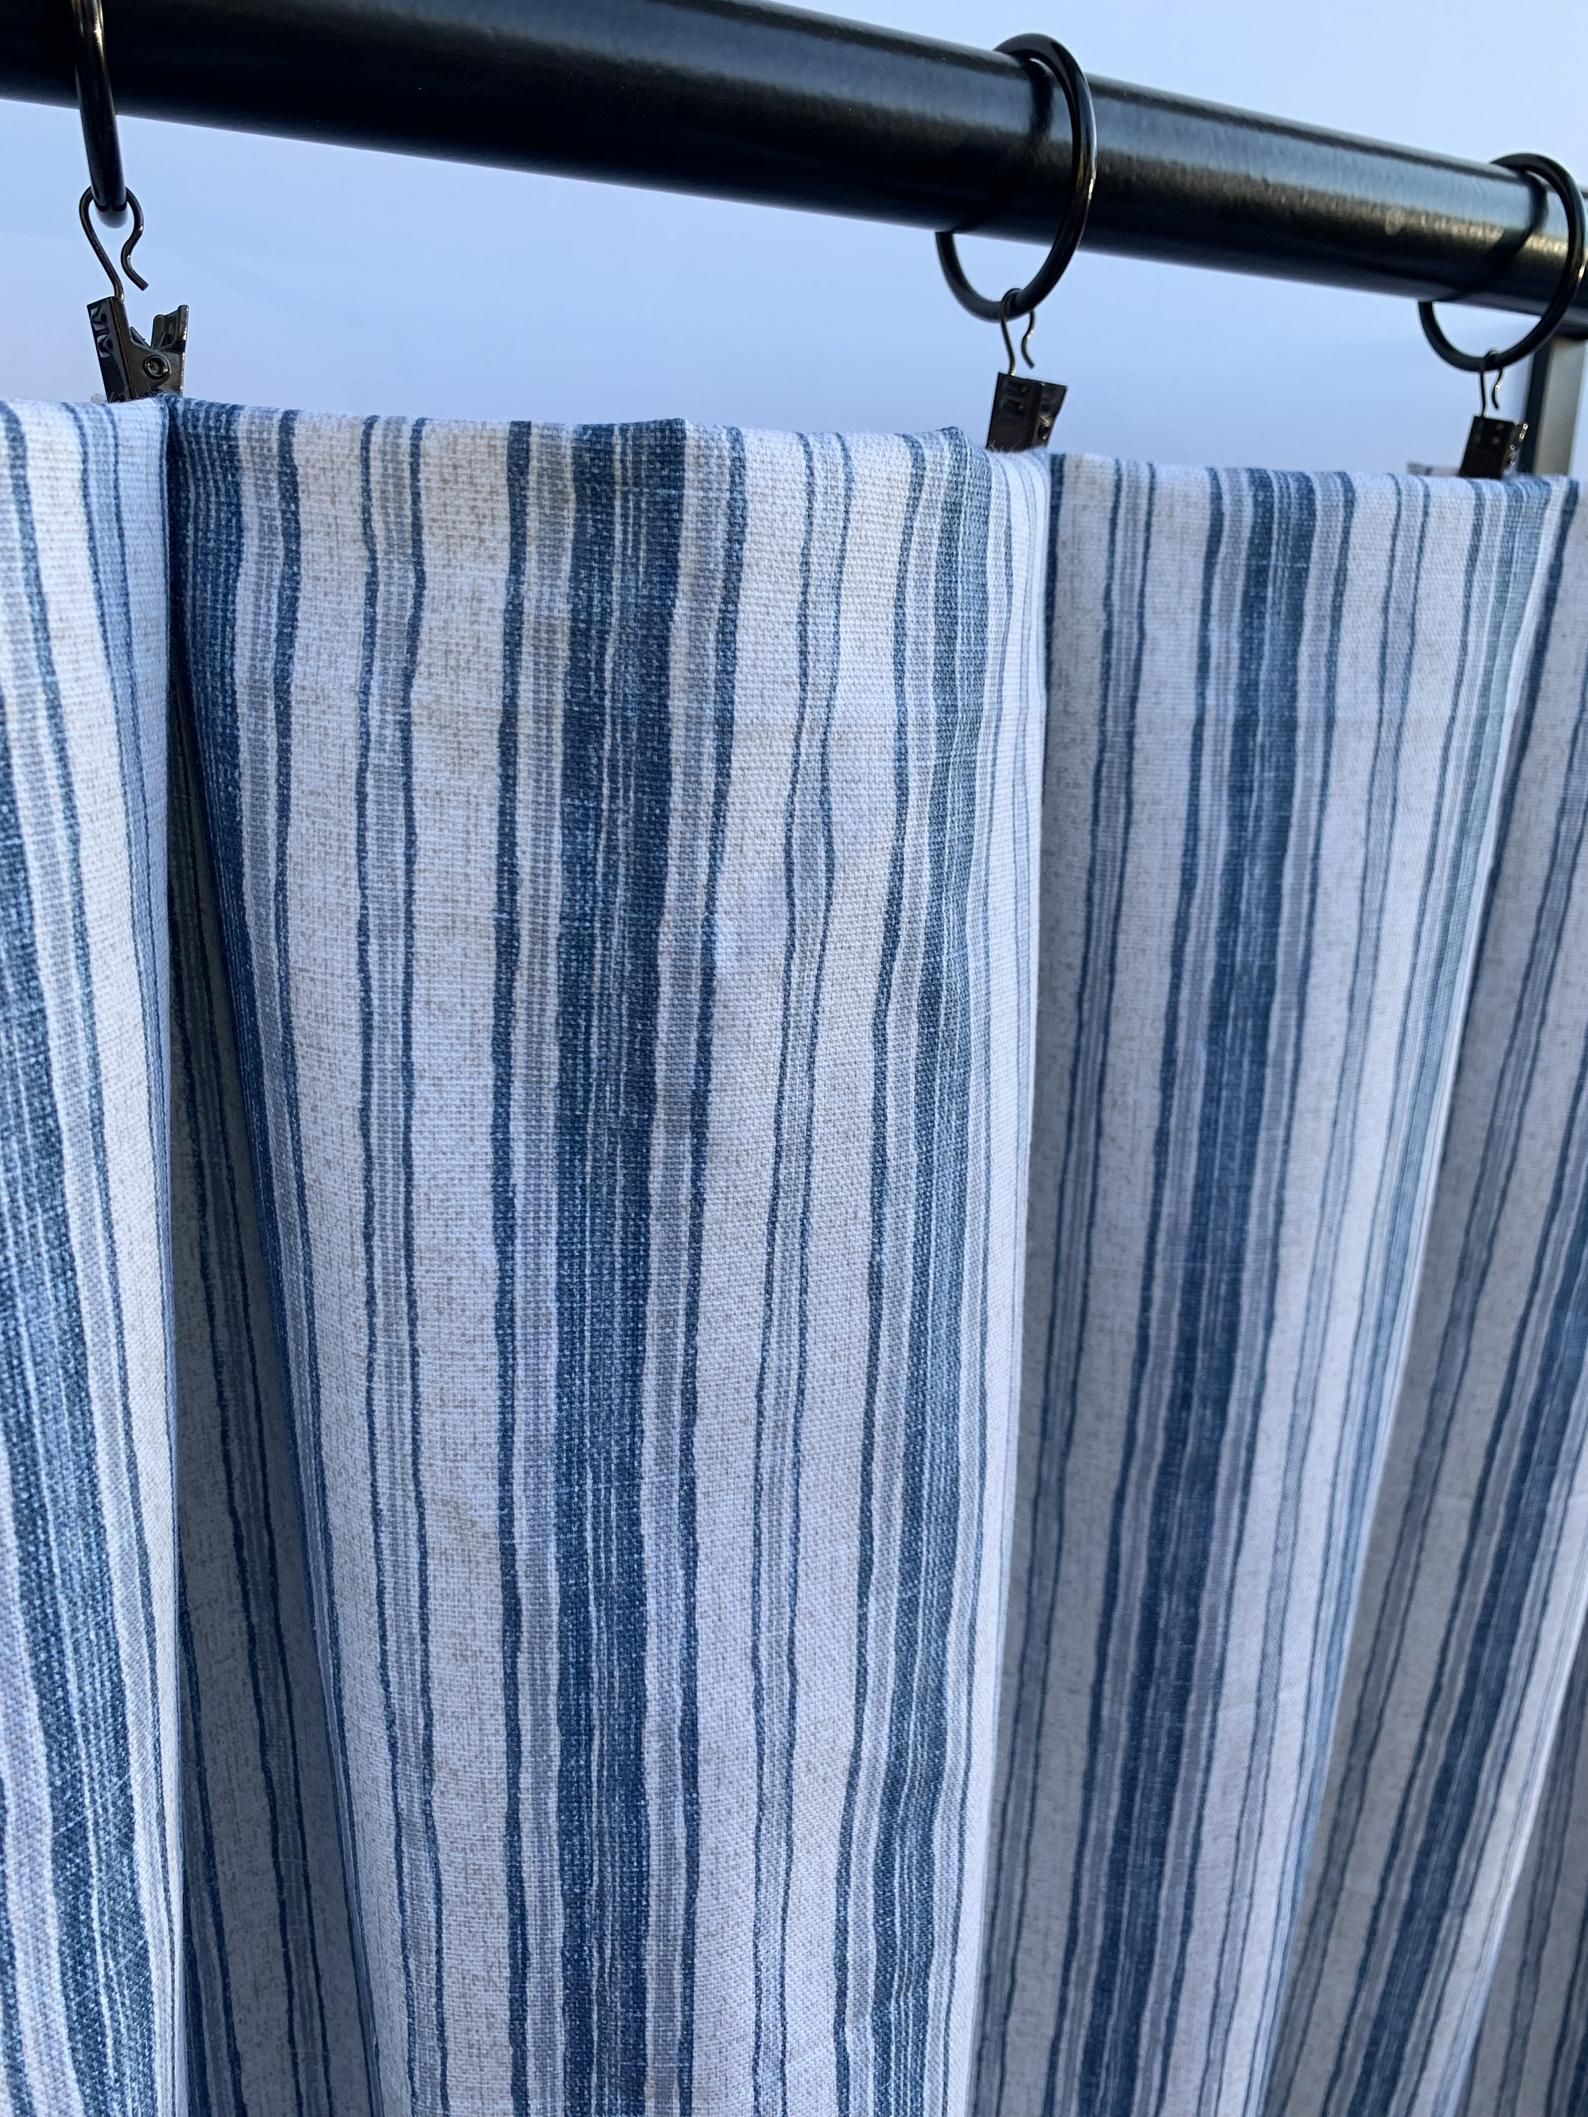 Magnolia Home Curtains Blue Striped Curtains 2 Curtain Etsy